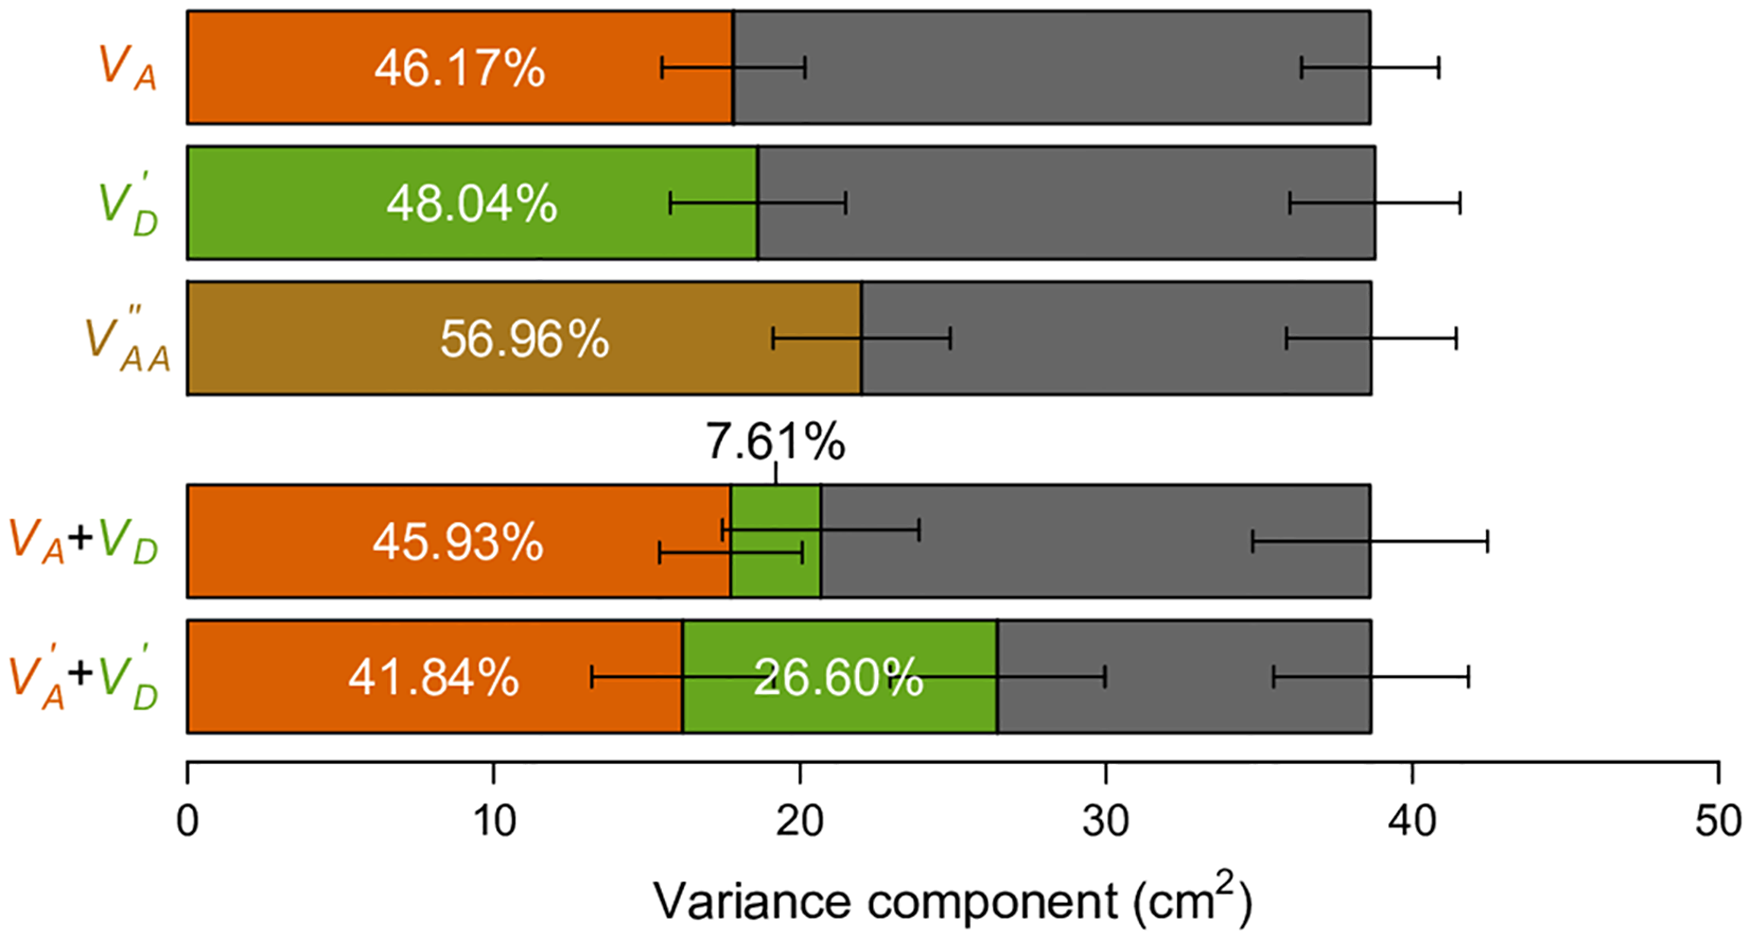 Variance component analyses of human height data.